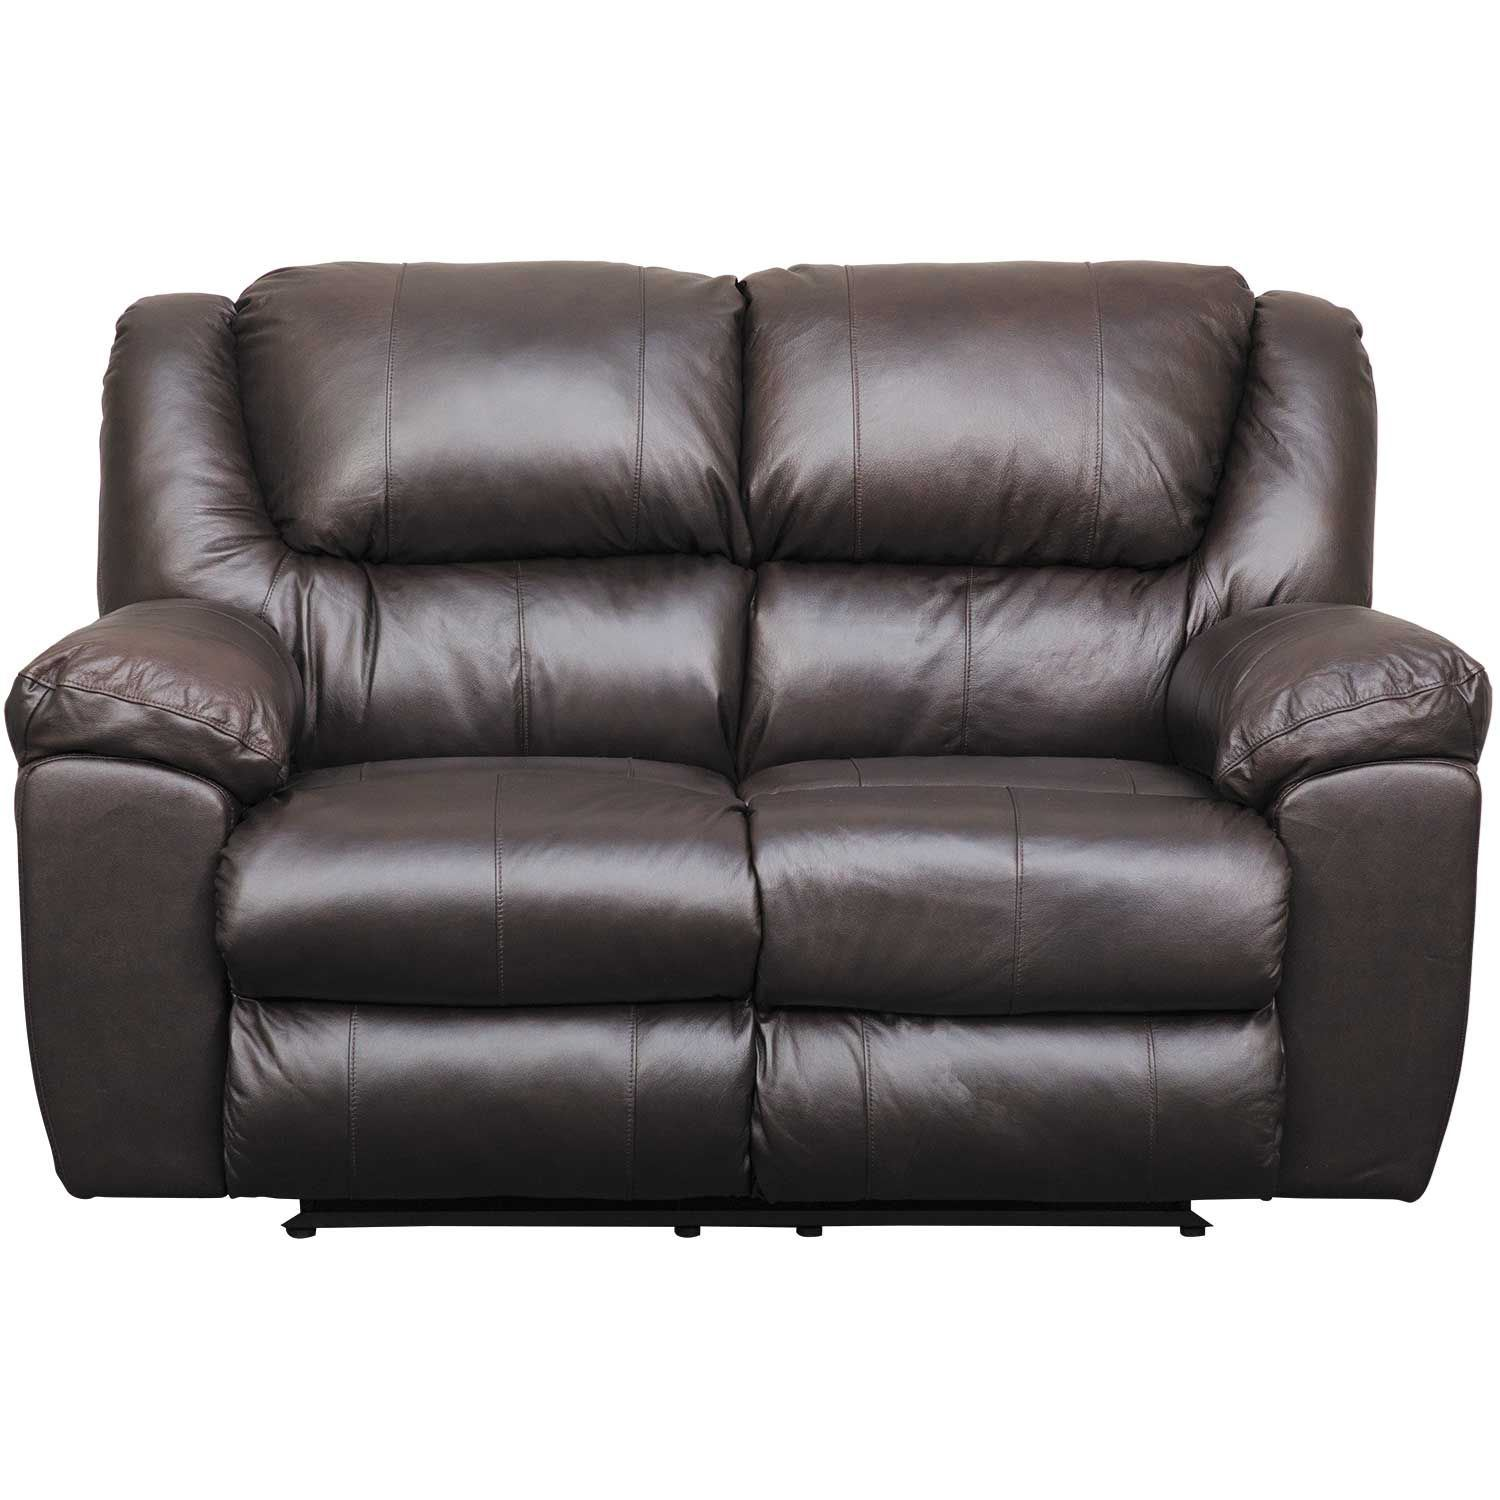 Italian Leather Power Reclining Loveseat 64912 Jackson